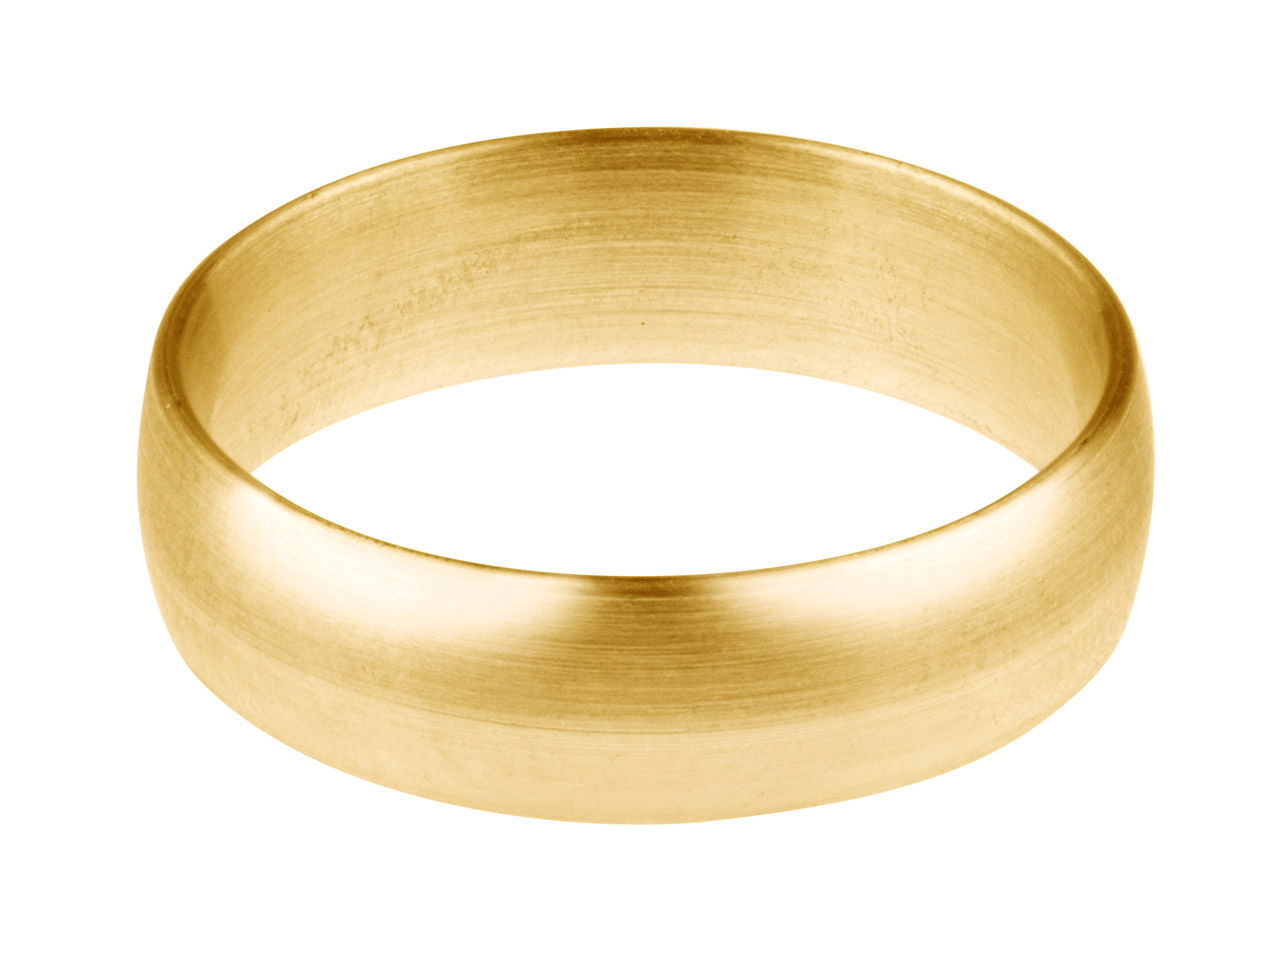 18ct Yellow Blended Court          Wedding Ring 5.0mm I 1.3mm Wall    Hallmarked Wall Thickness 1.30mm